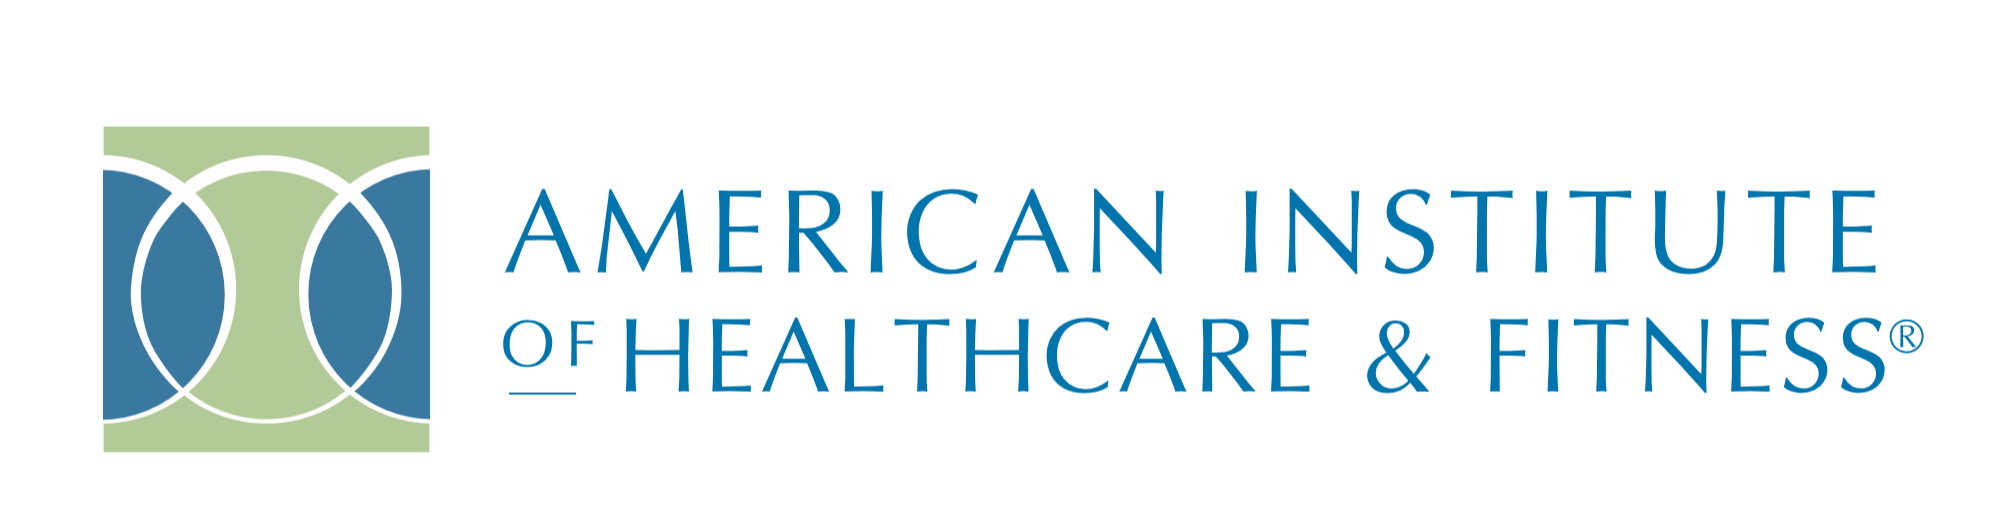 American Institute of Healthcare and Fitness Logo